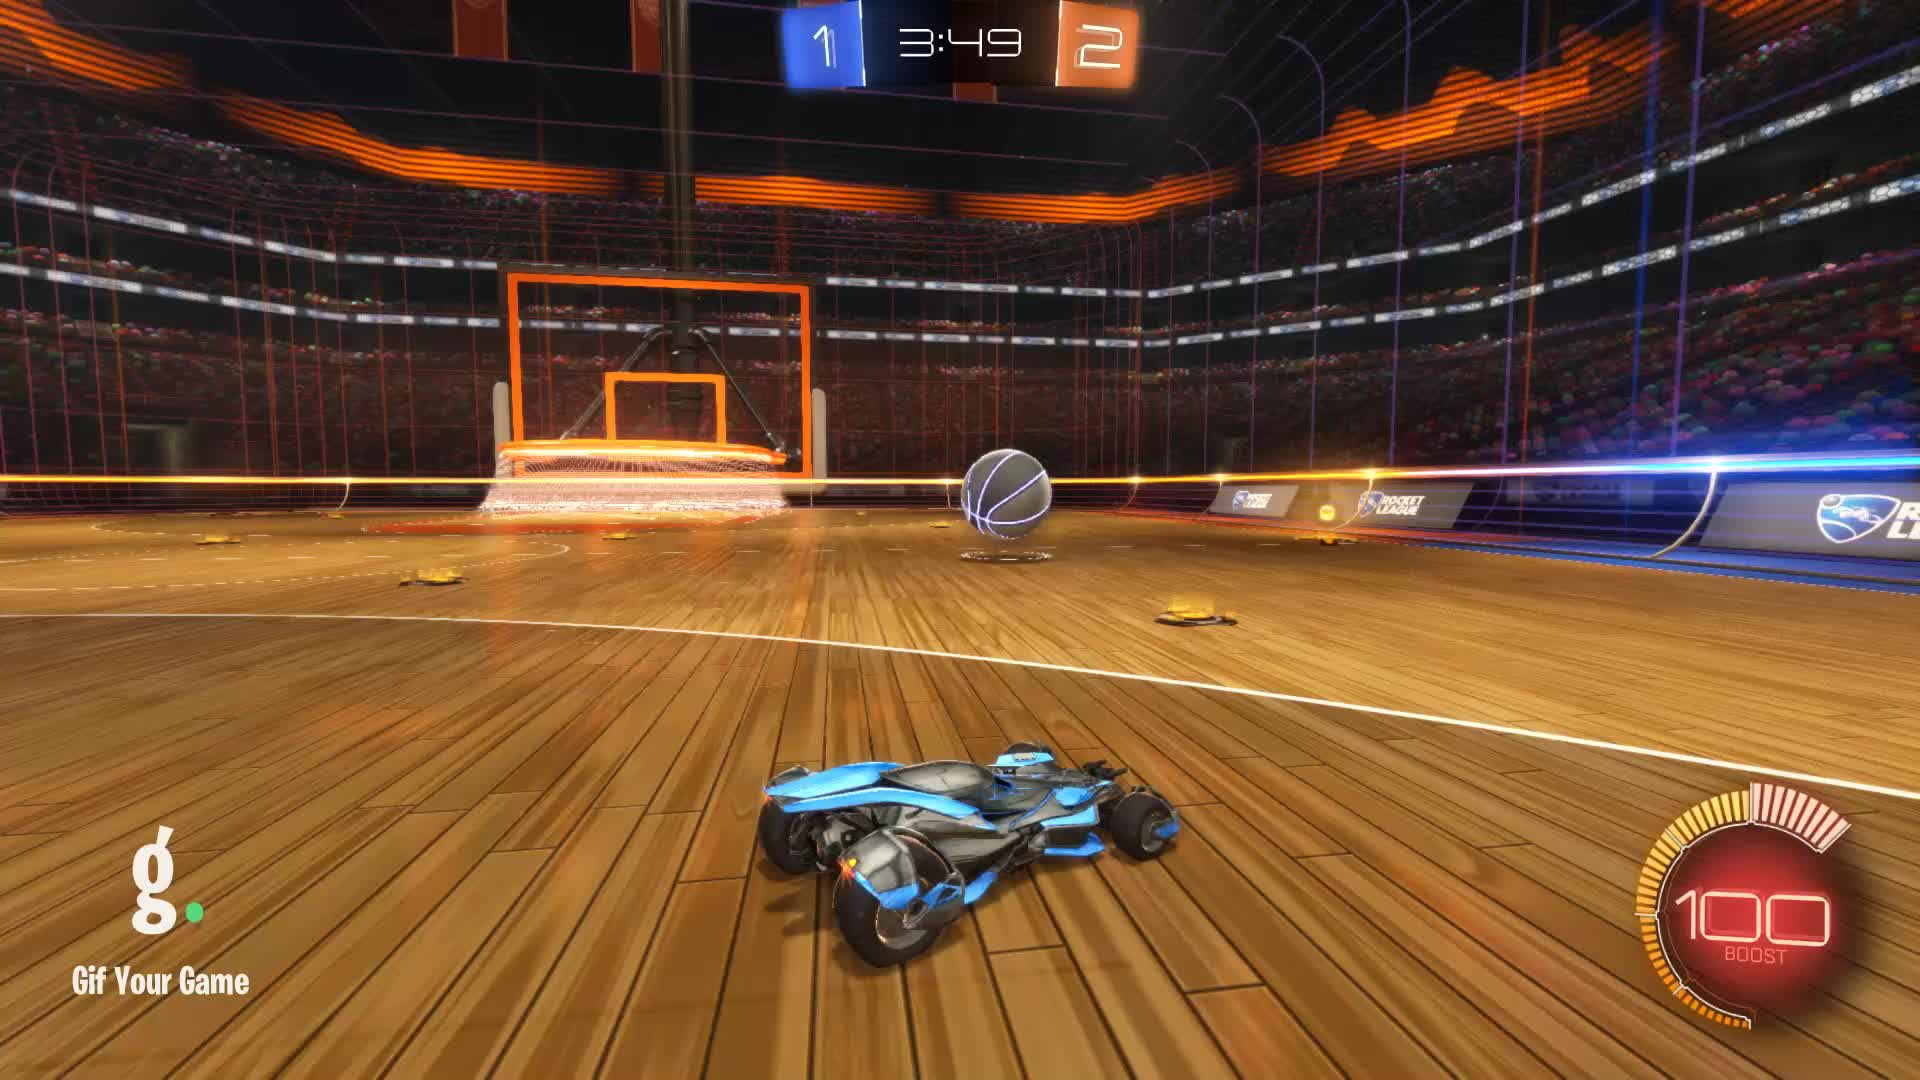 Gif Your Game, GifYourGame, Goal, Rocket League, RocketLeague, Stuffed Mushrooms, Goal 4: Stuffed Mushrooms GIFs